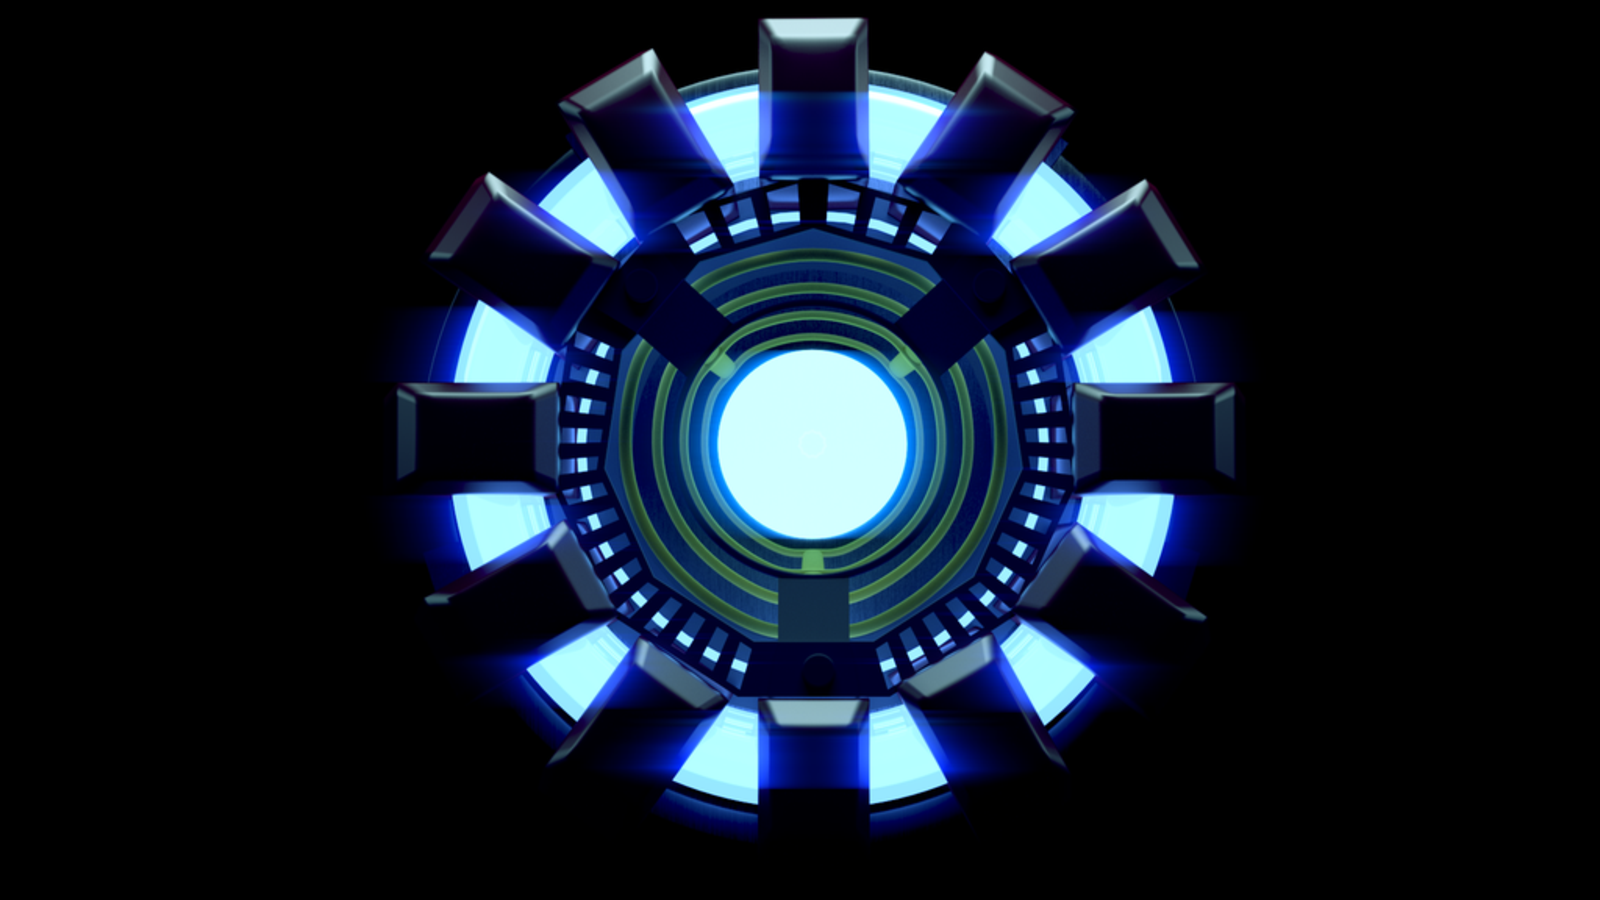 Ironman Arc Reactor Wallpaper Hd Images Pictures   Becuo 1600x900